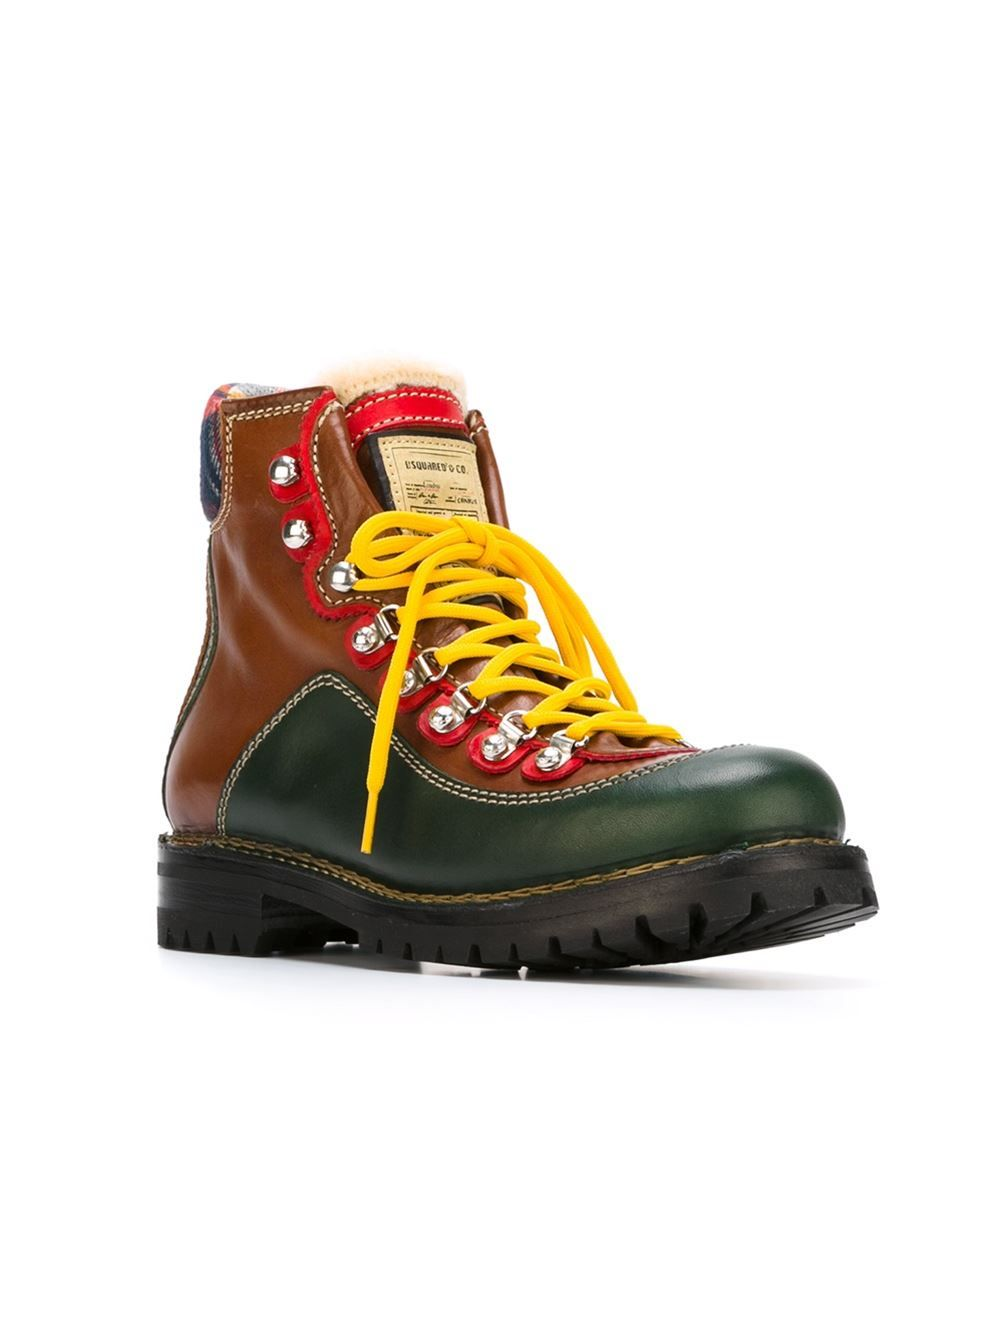 302798f99d3b Dsquared2 Panelled Hiking Boots - A.m.r. - Farfetch.com | shoes and ...